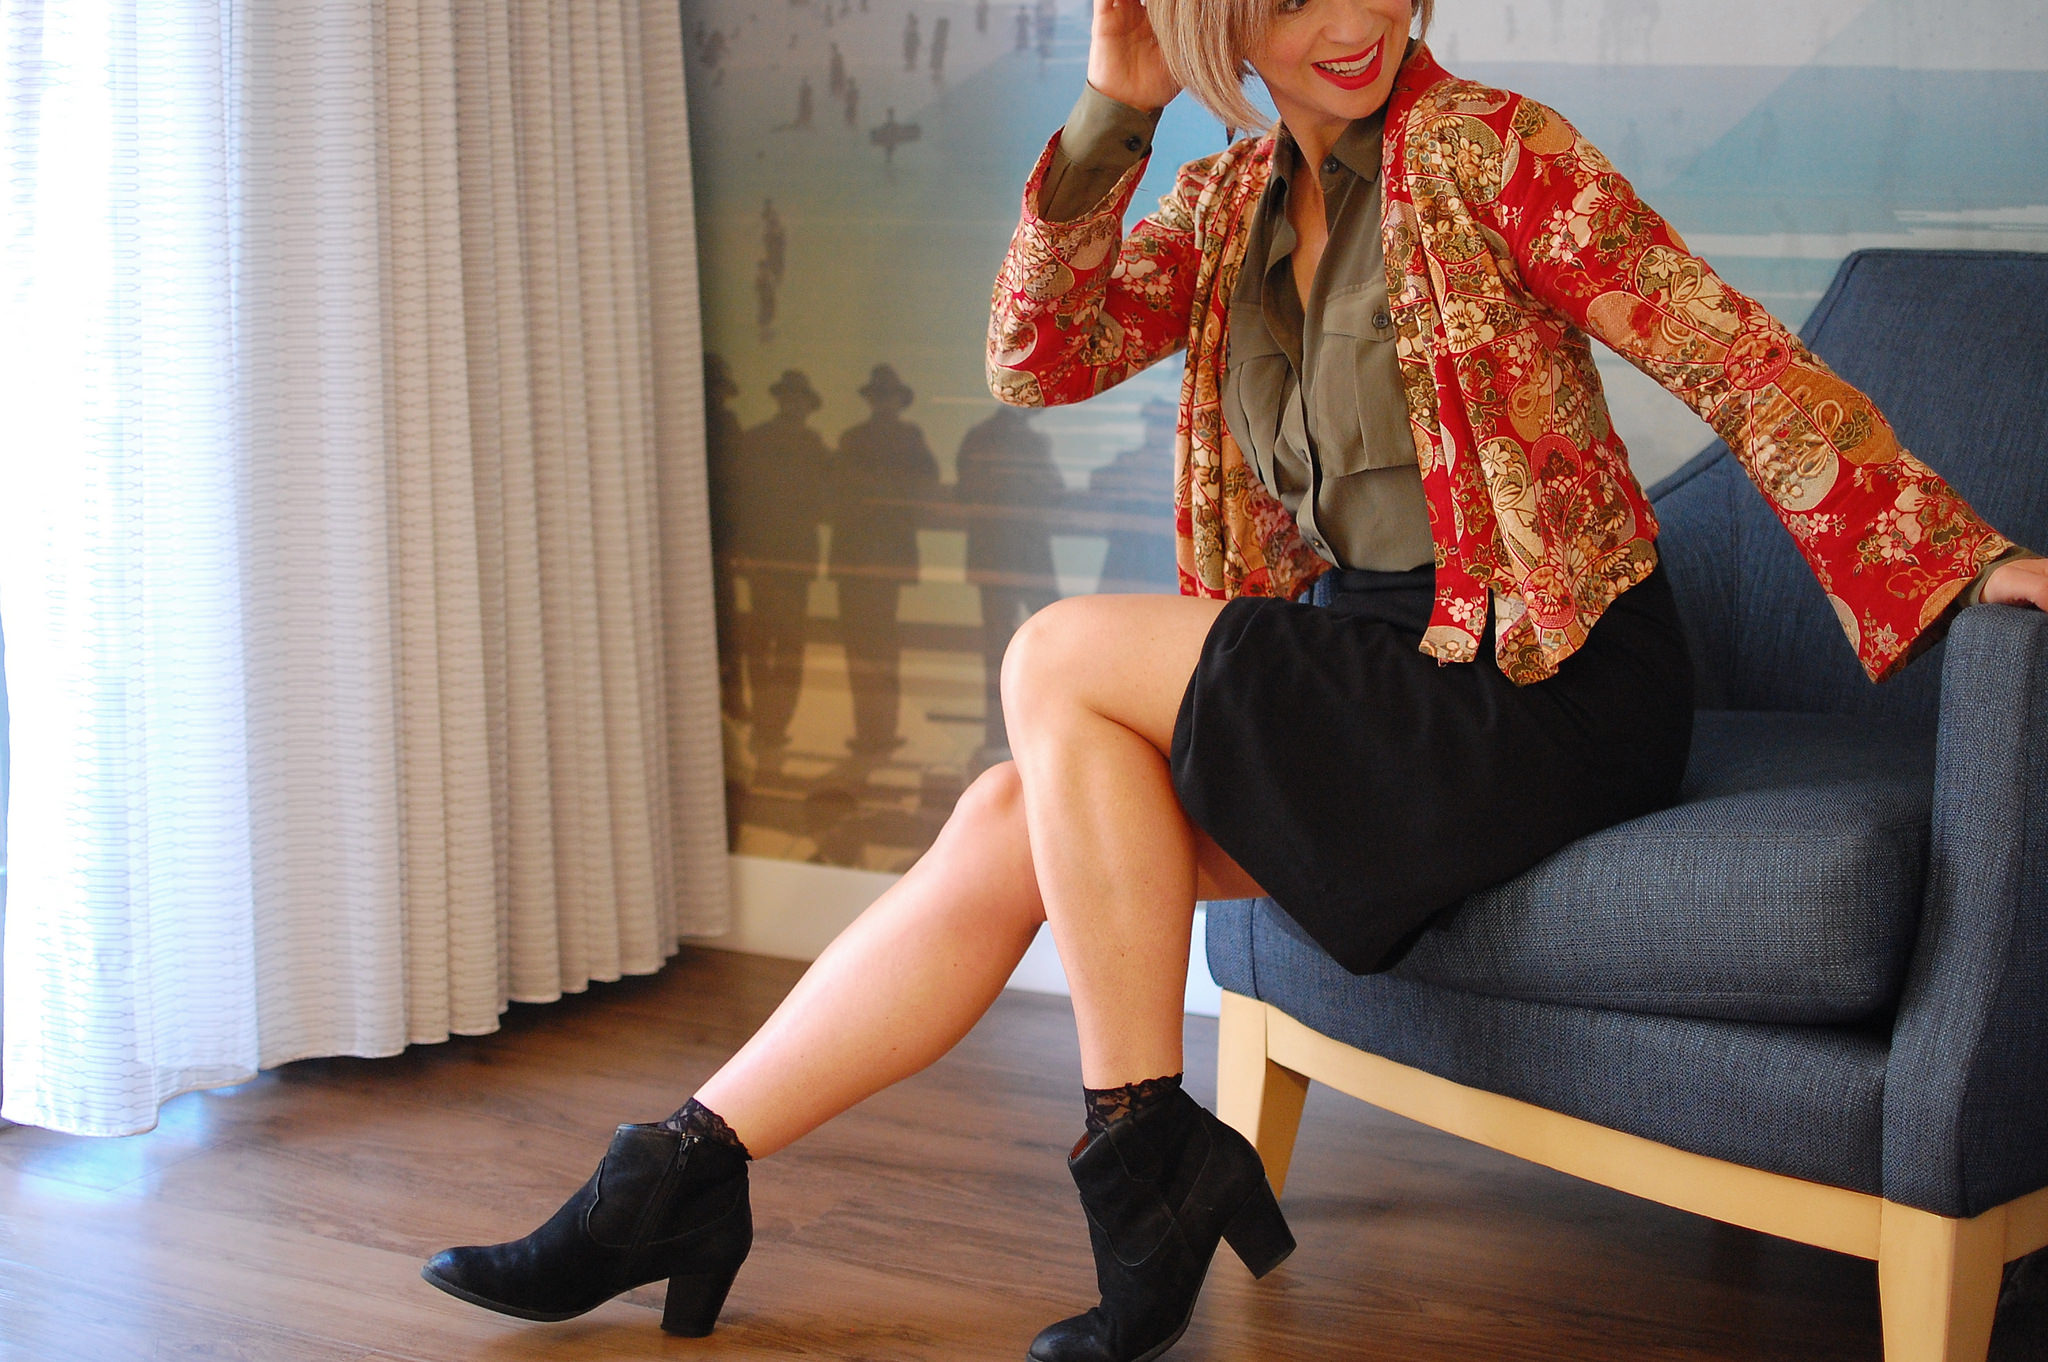 kimono black ankle boots business casual travel outfit ootd whatiwore2day